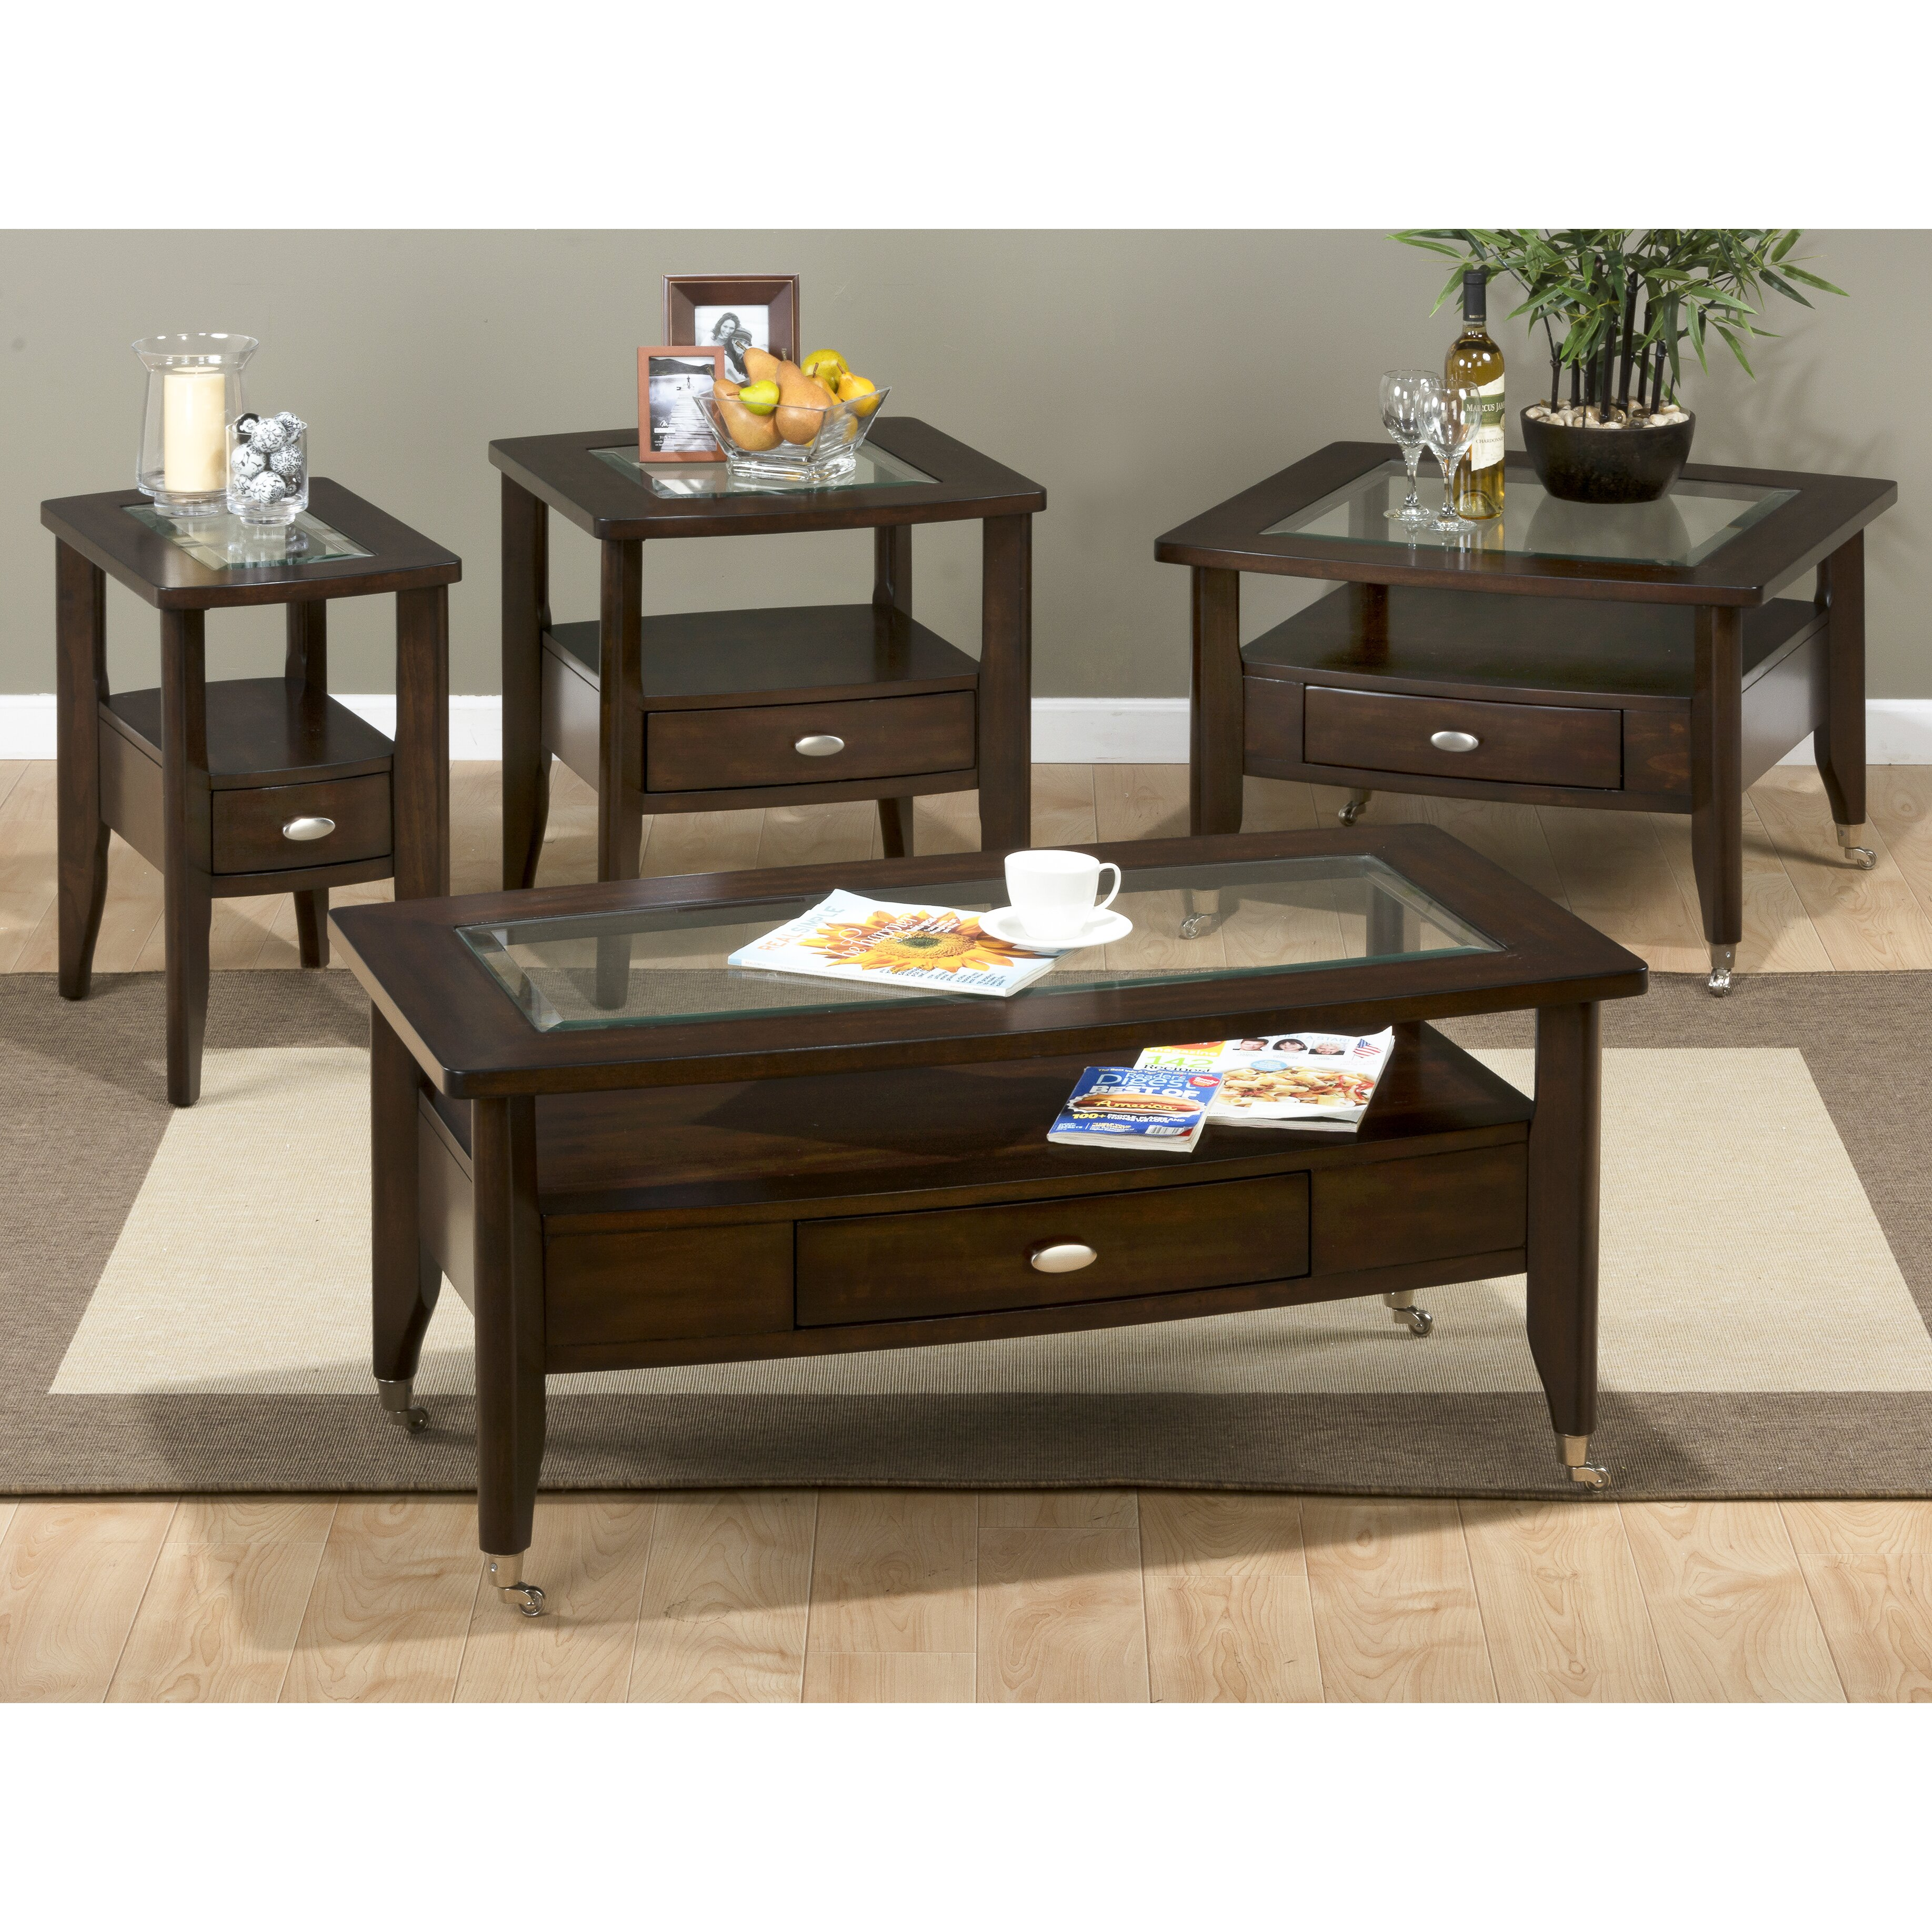 Red Barrel Studio Berwick Coffee Table Set & Reviews